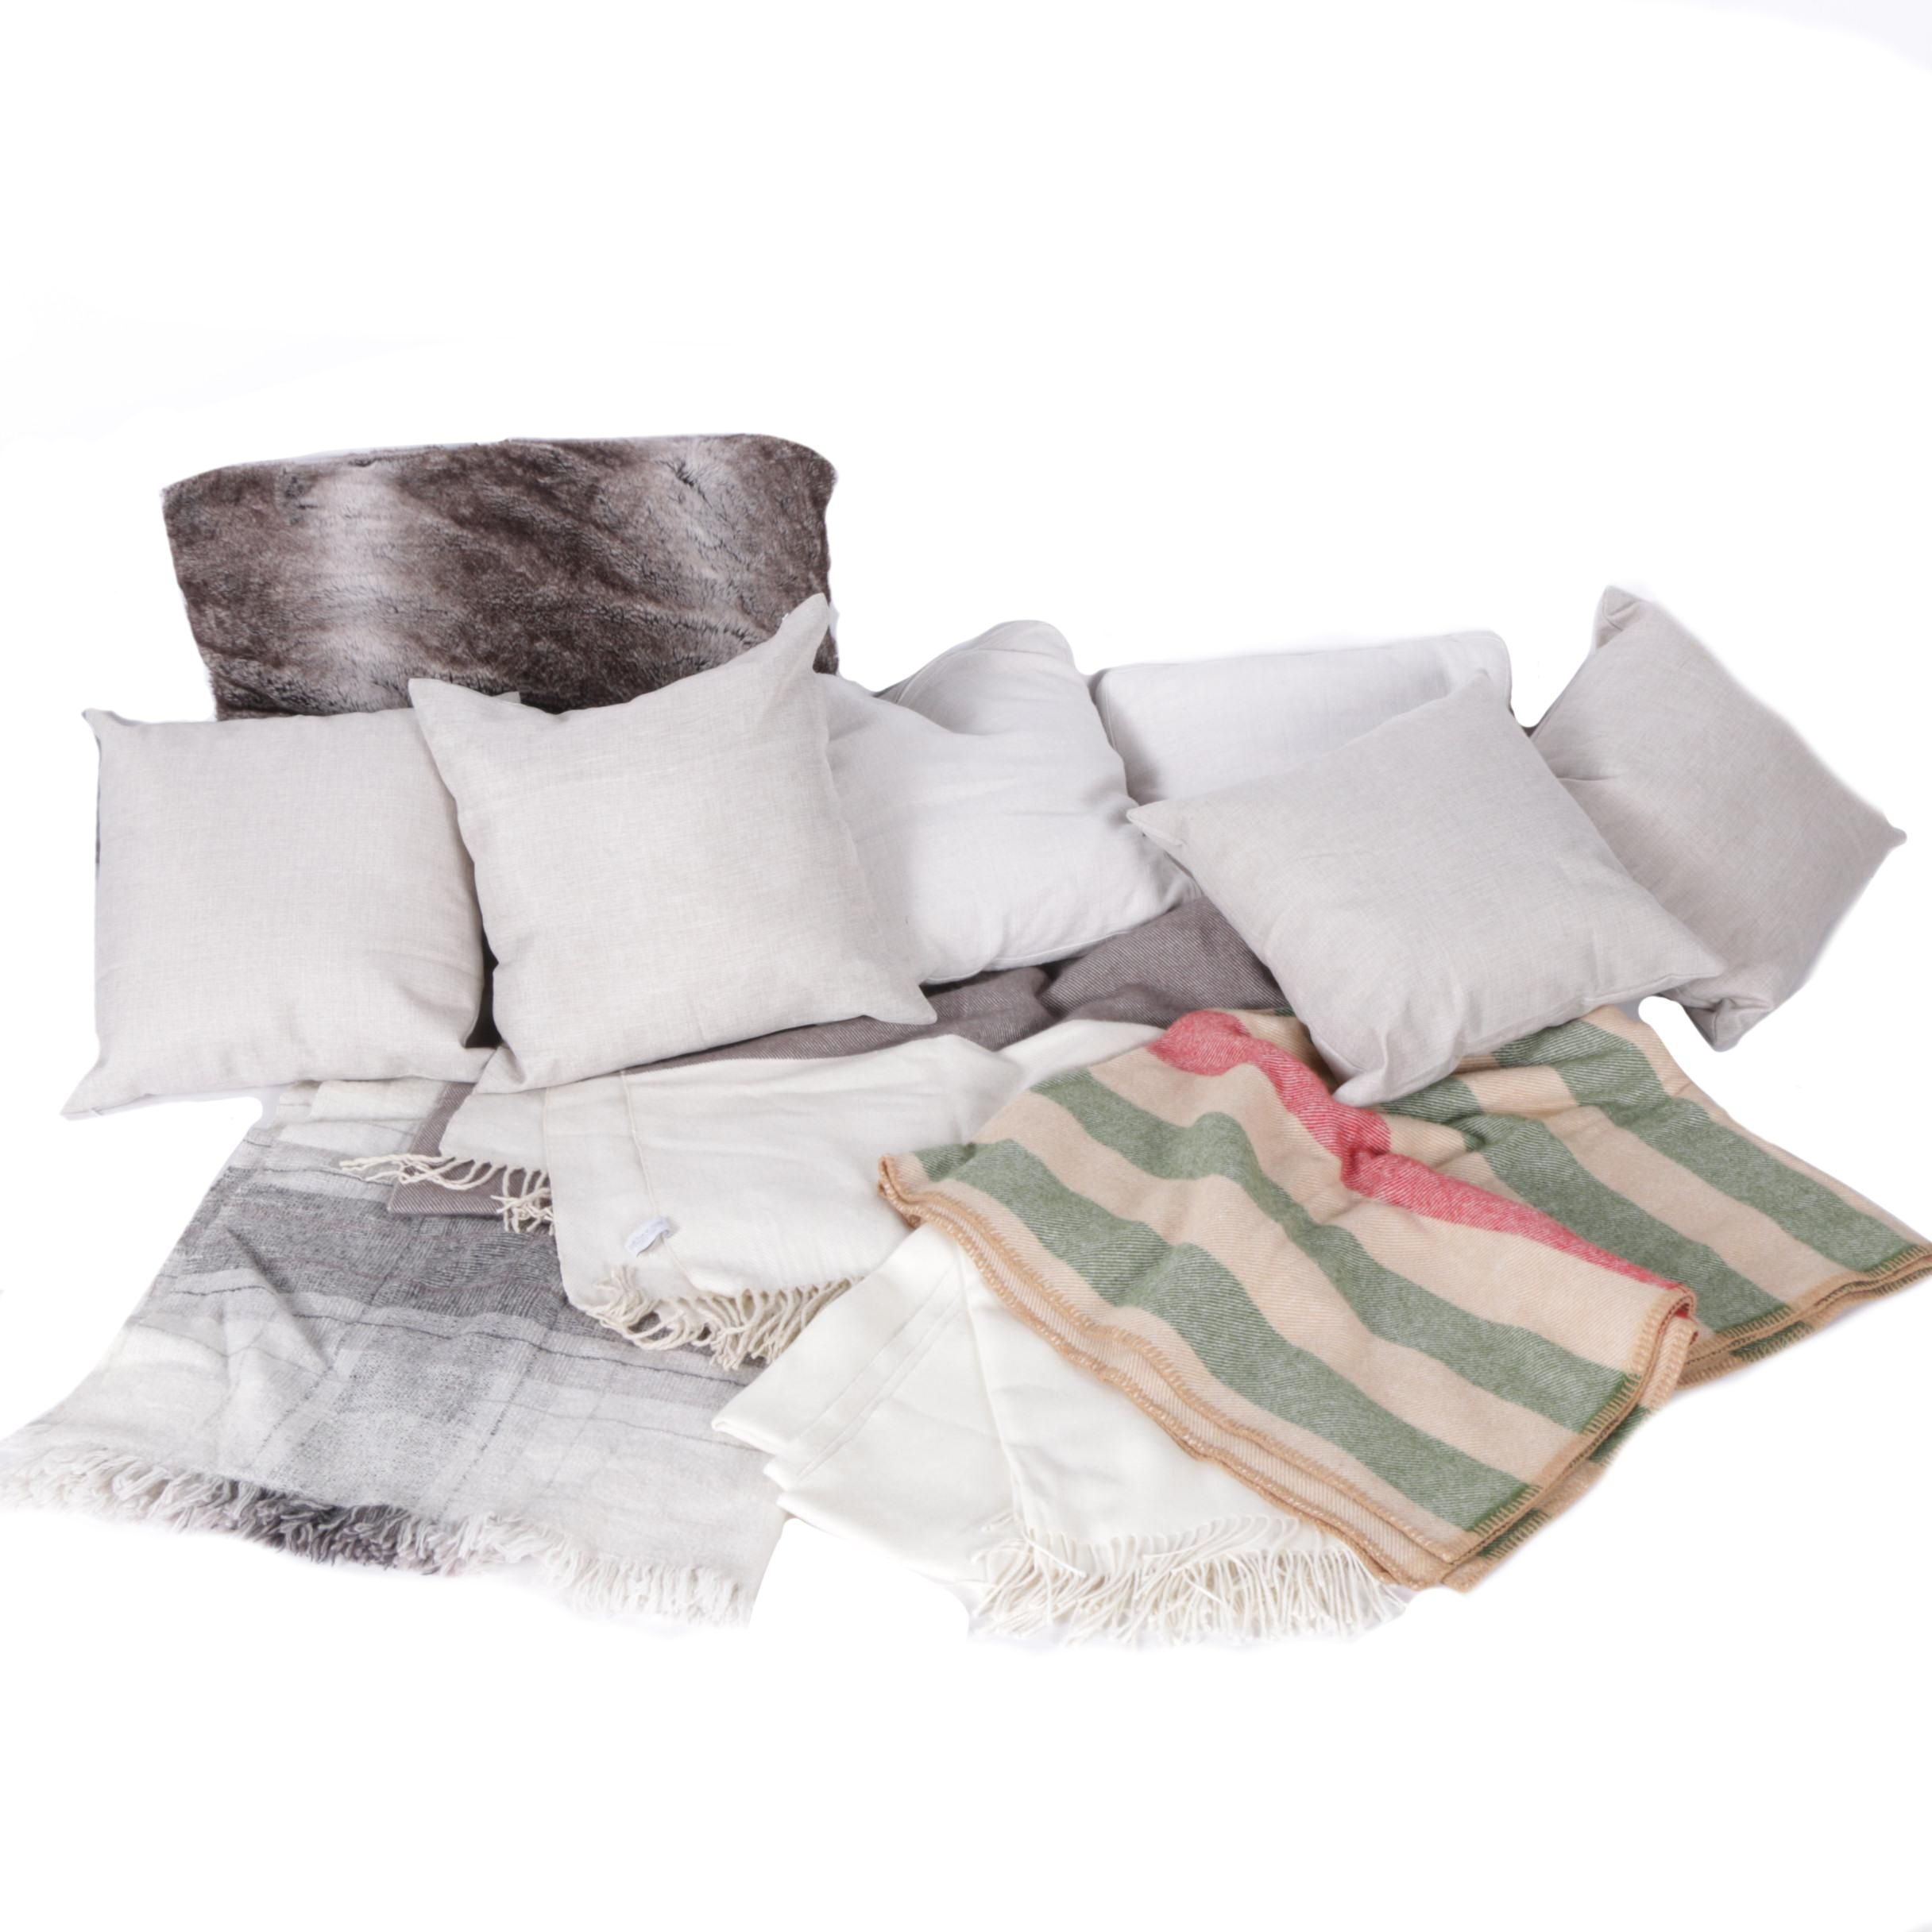 Accent Pillows, Wool Blanket, and Items by Pom Pom at Home